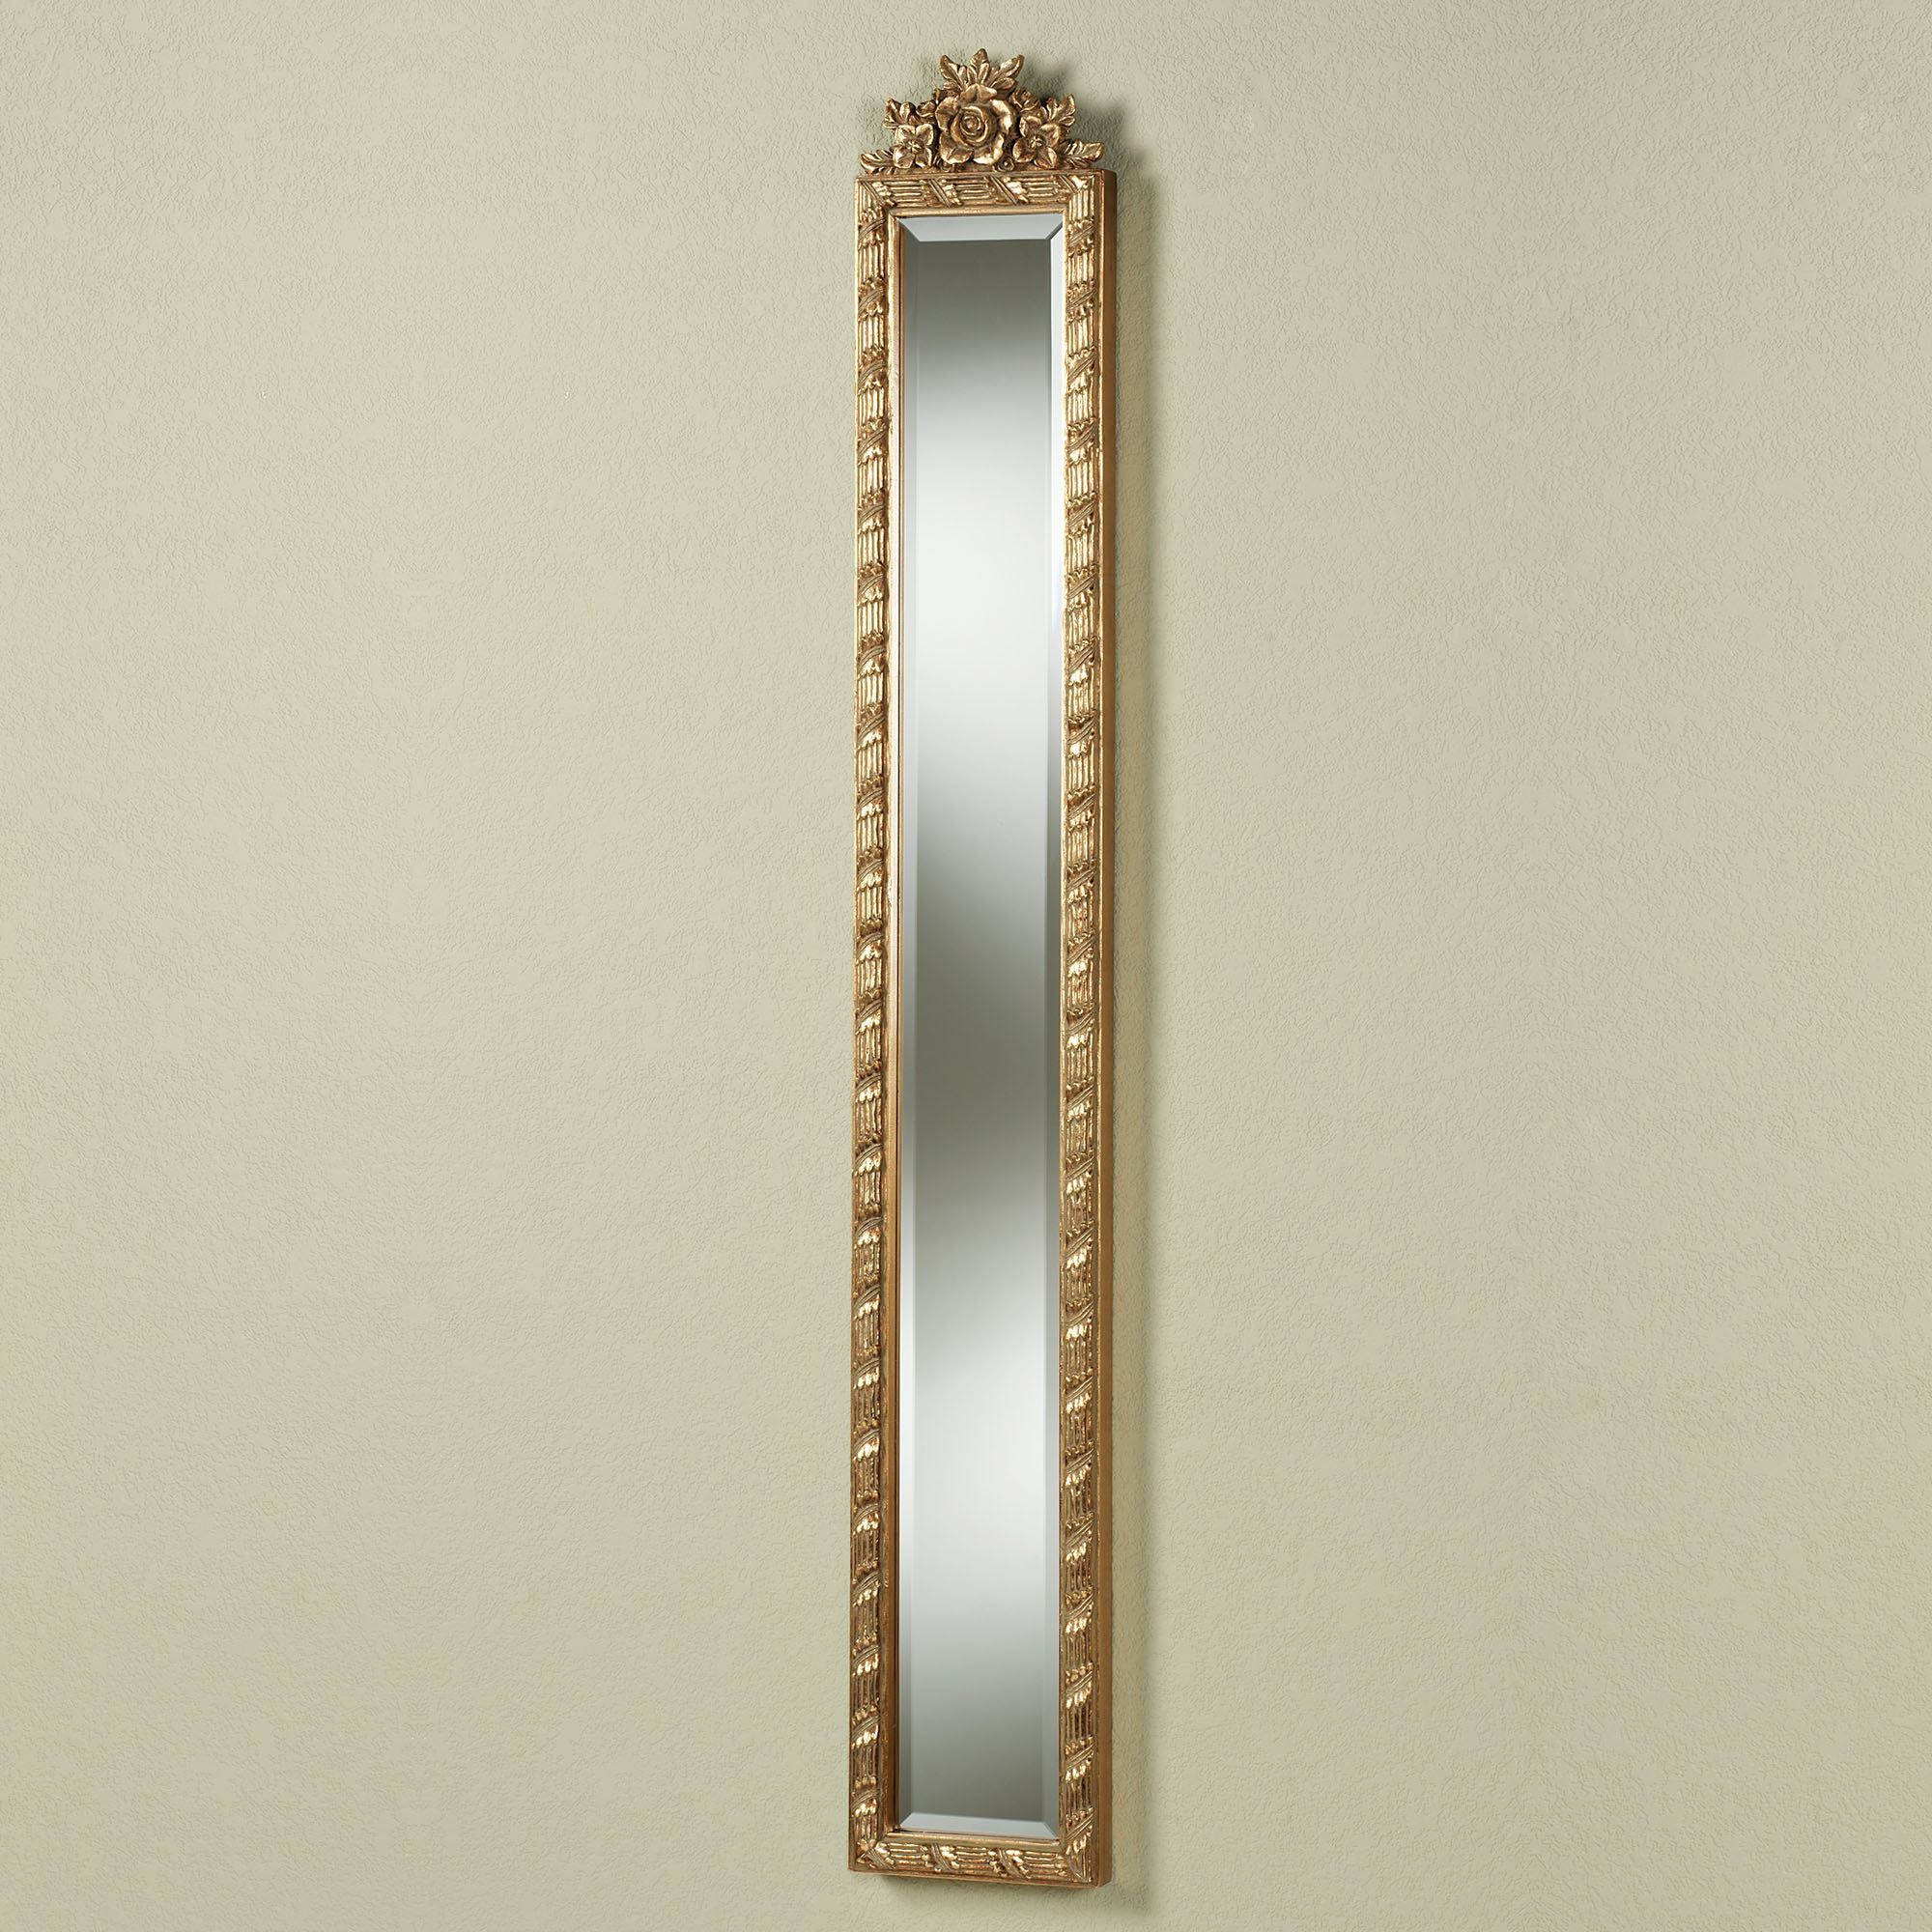 Giuliana Antique Gold Floral Wall Mirror Panel In Trendy Large Gold Wall Mirrors (View 18 of 20)